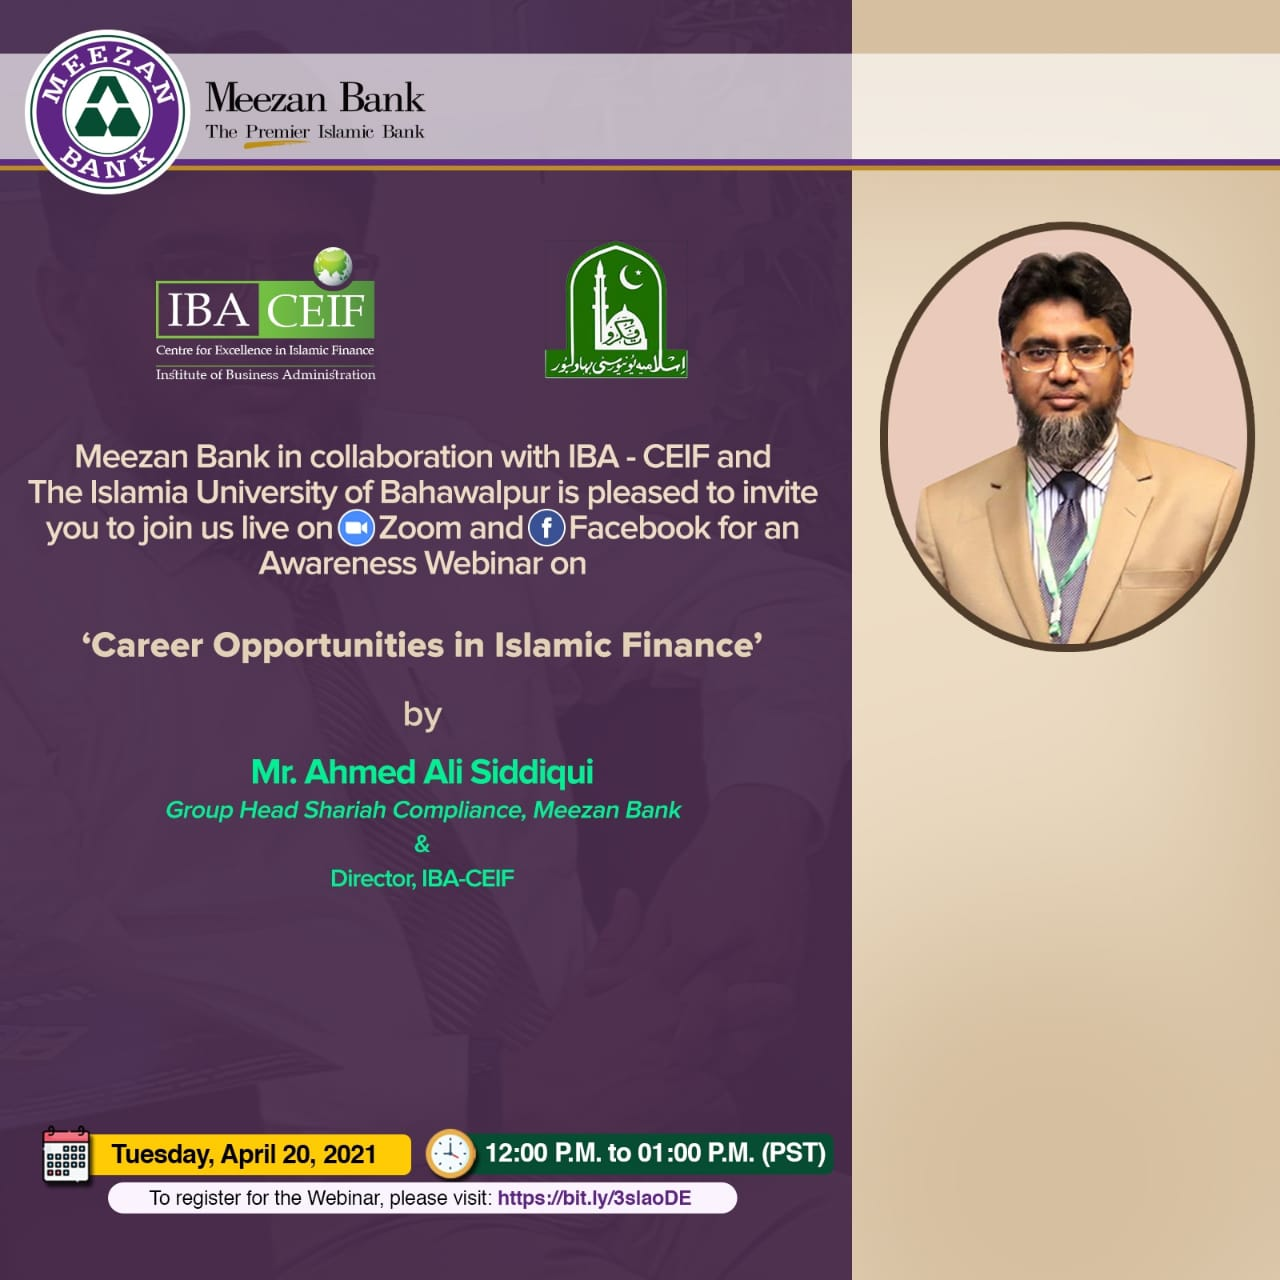 Career Opportunities in Islamic Finance